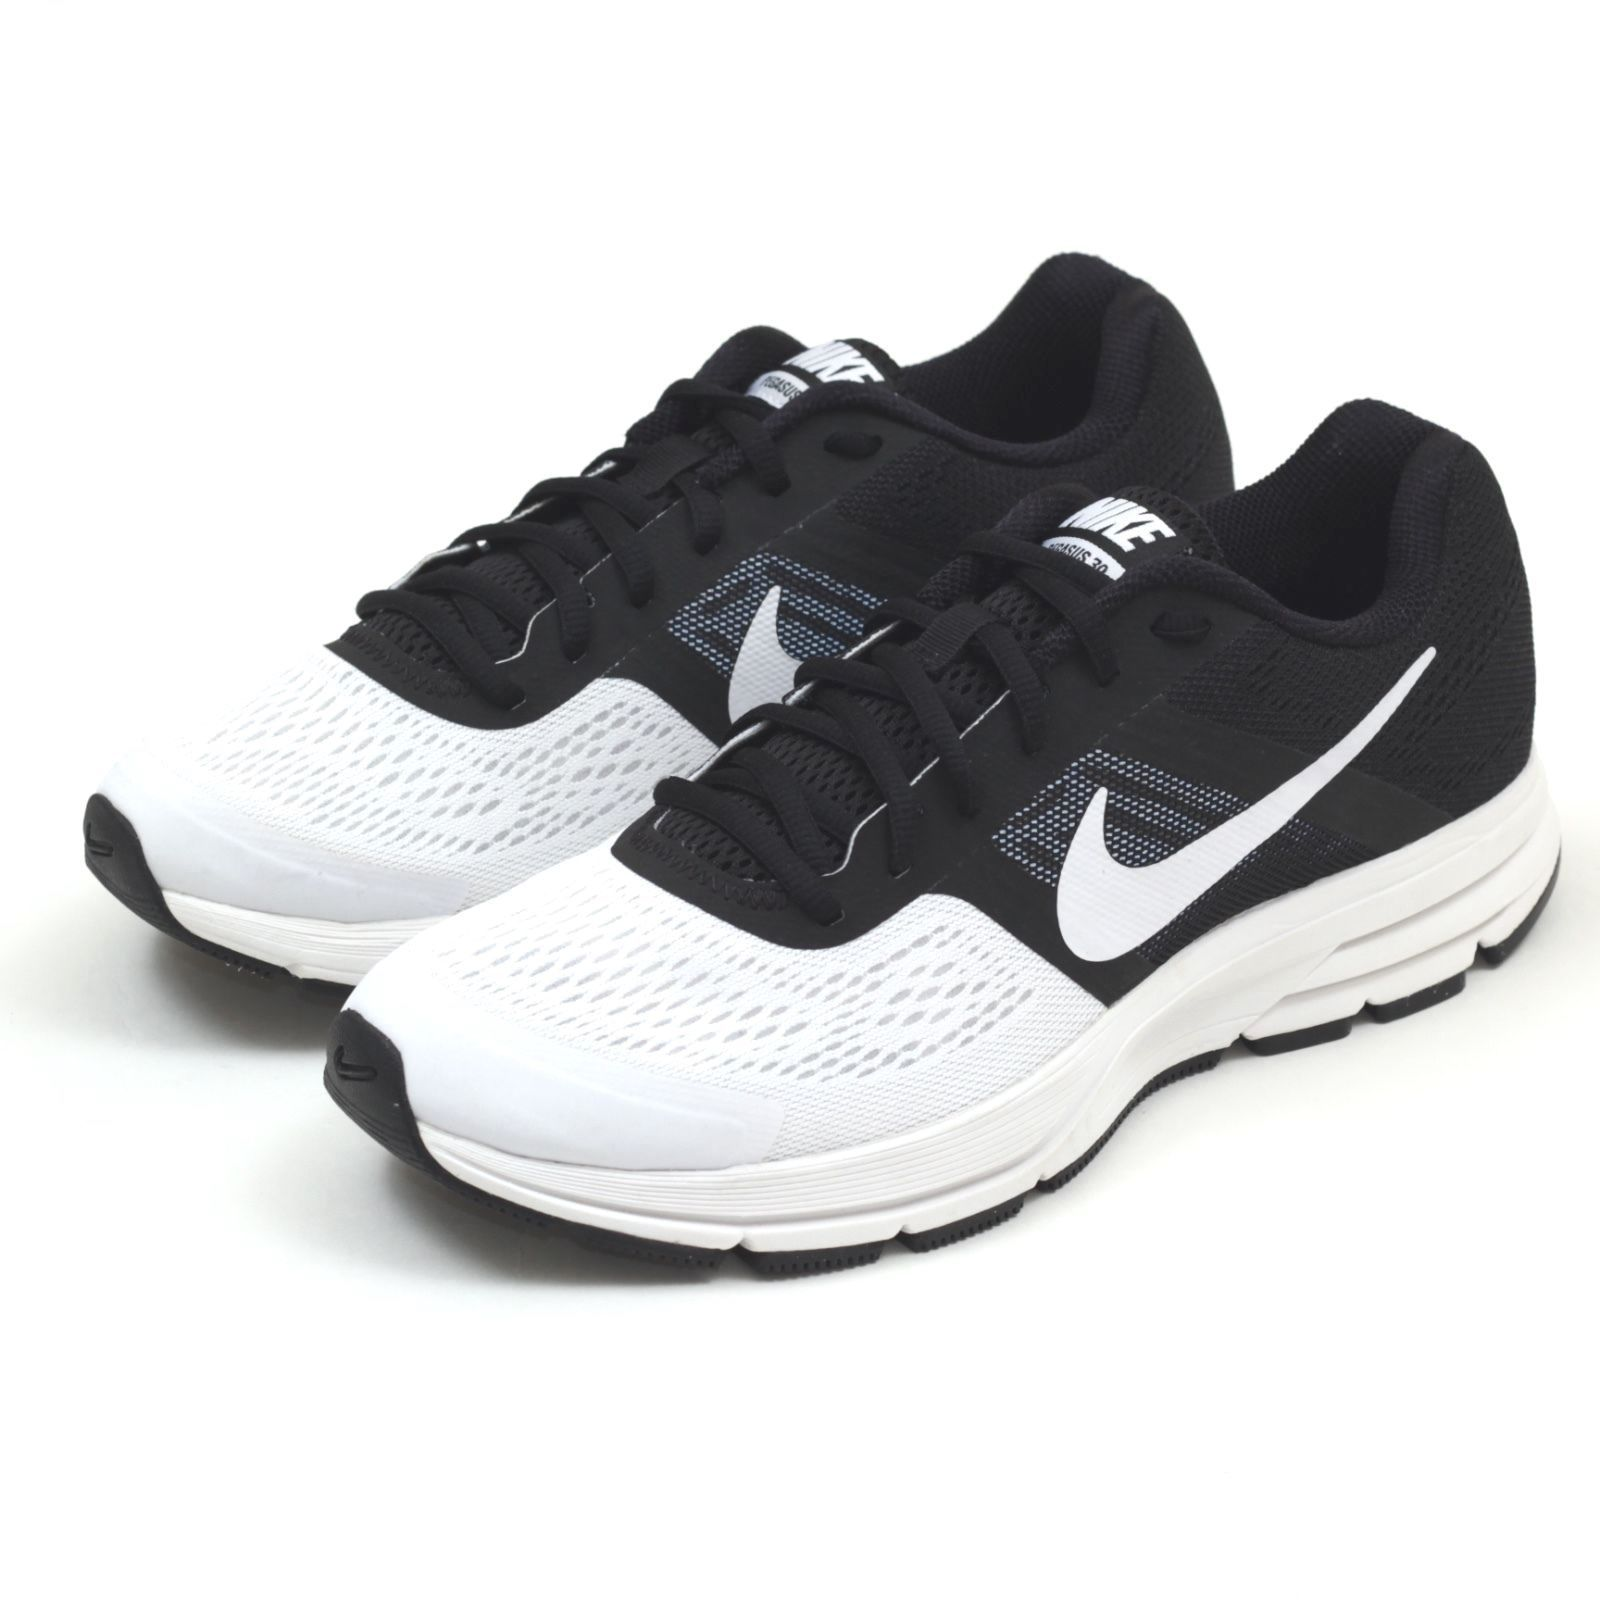 Smiling Cat Unique Men Ltra Lightweight Running Shoes Casual Mesh Soft Sole Lightweight Breathable White